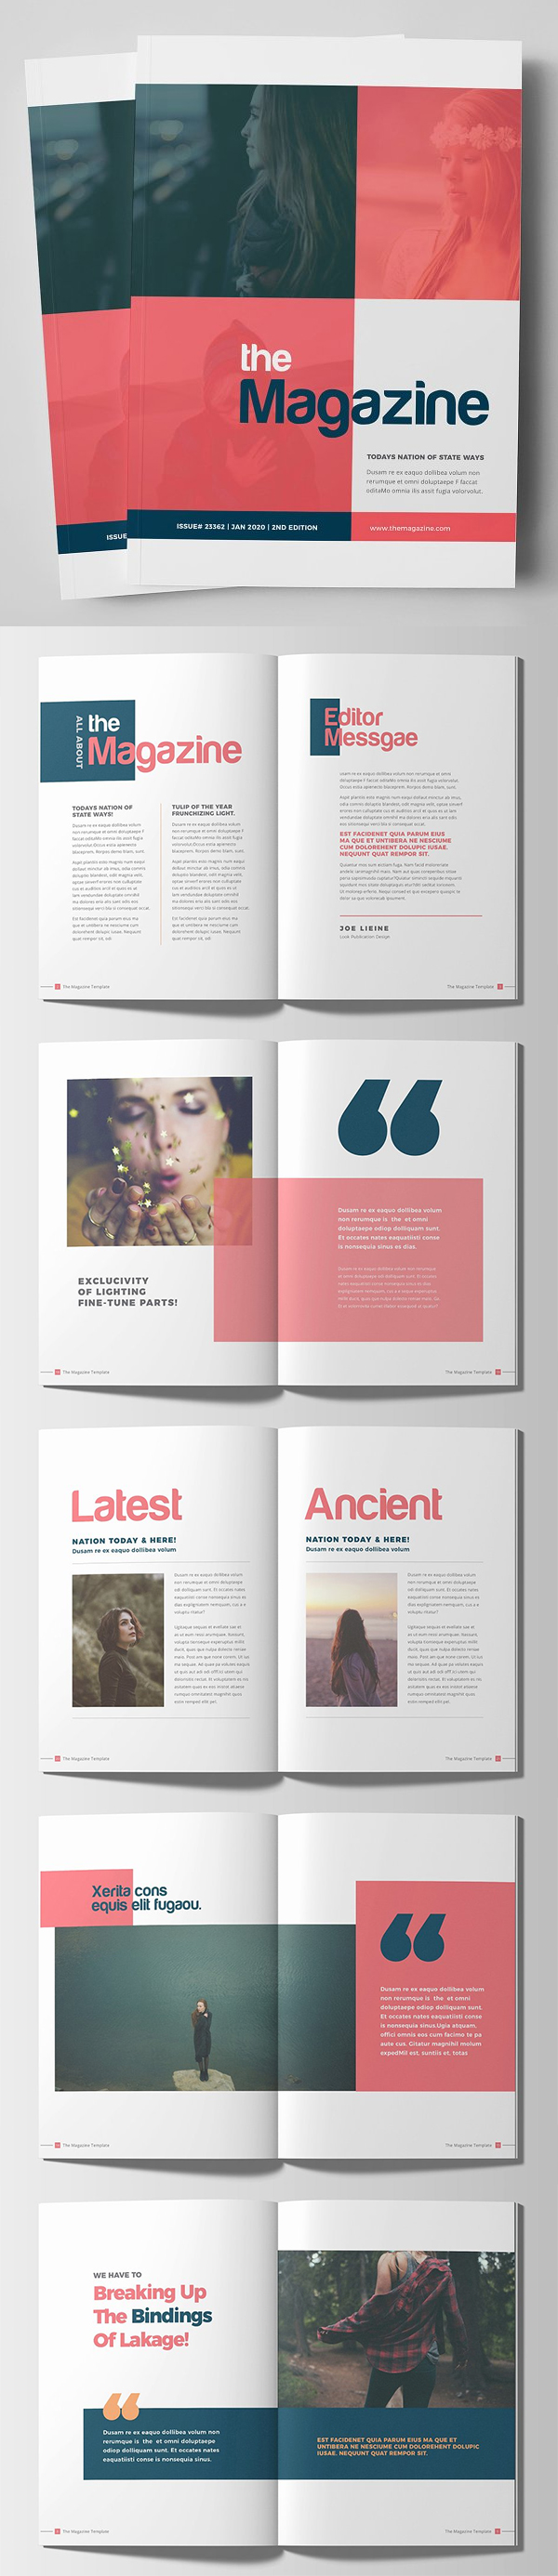 Fashion Lifestyle Magazine Brochure Template